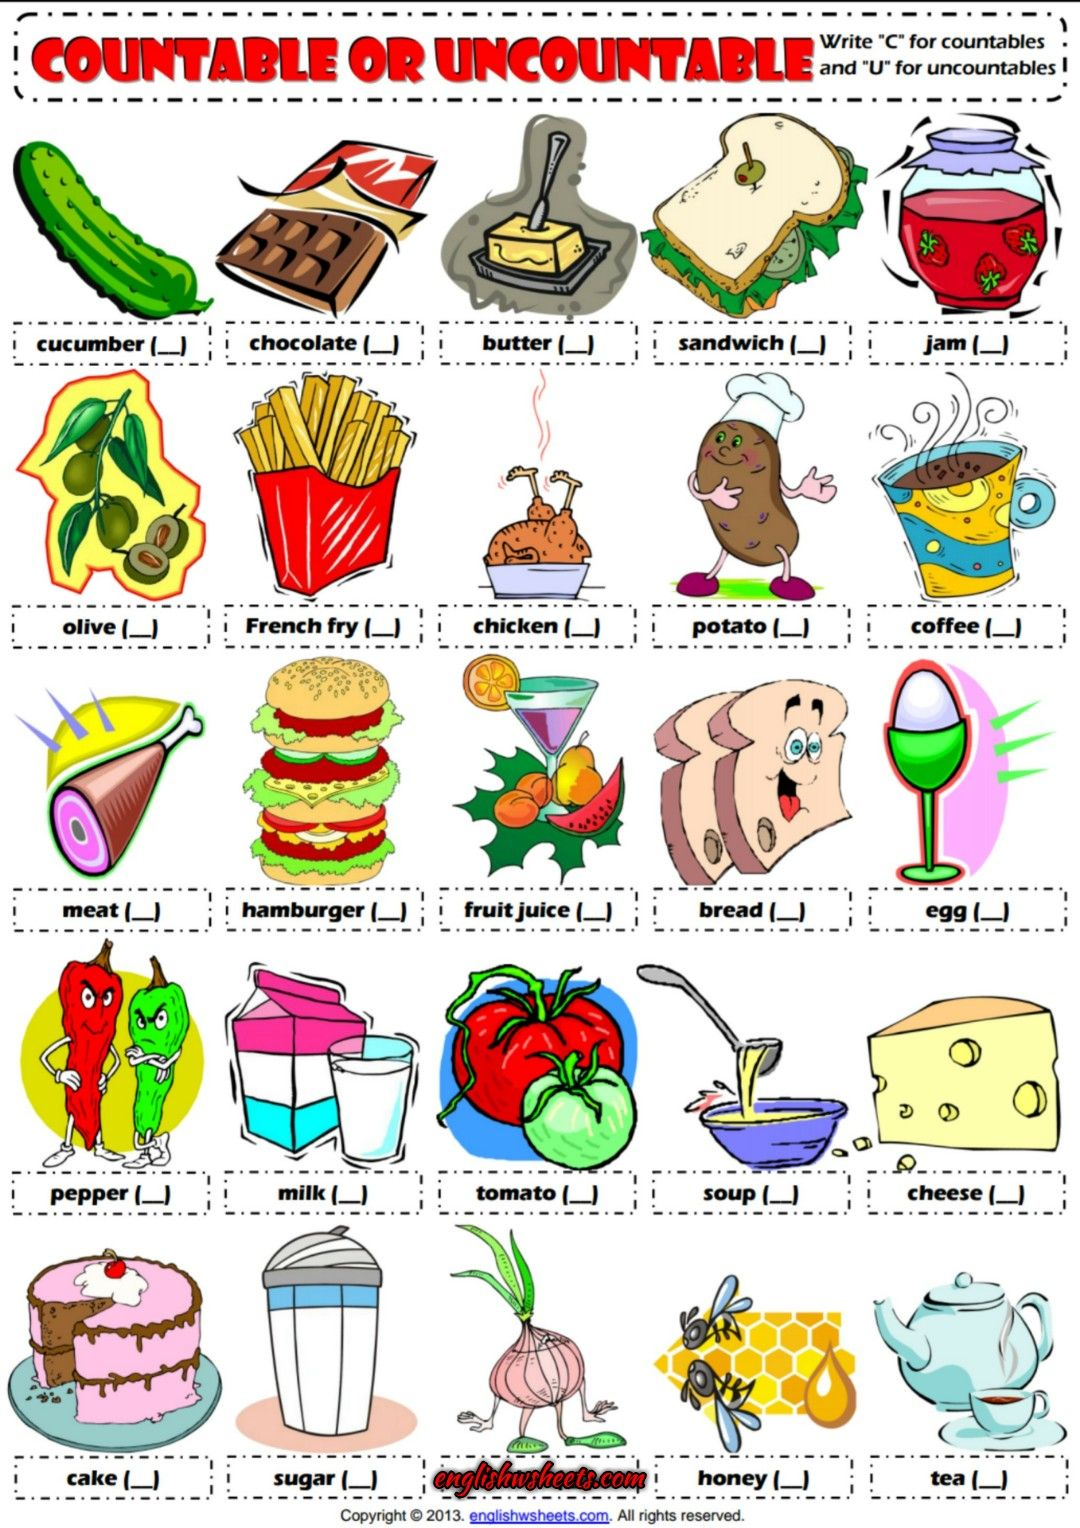 Countable Or Uncountable Nouns Esl Exercises Worksheet